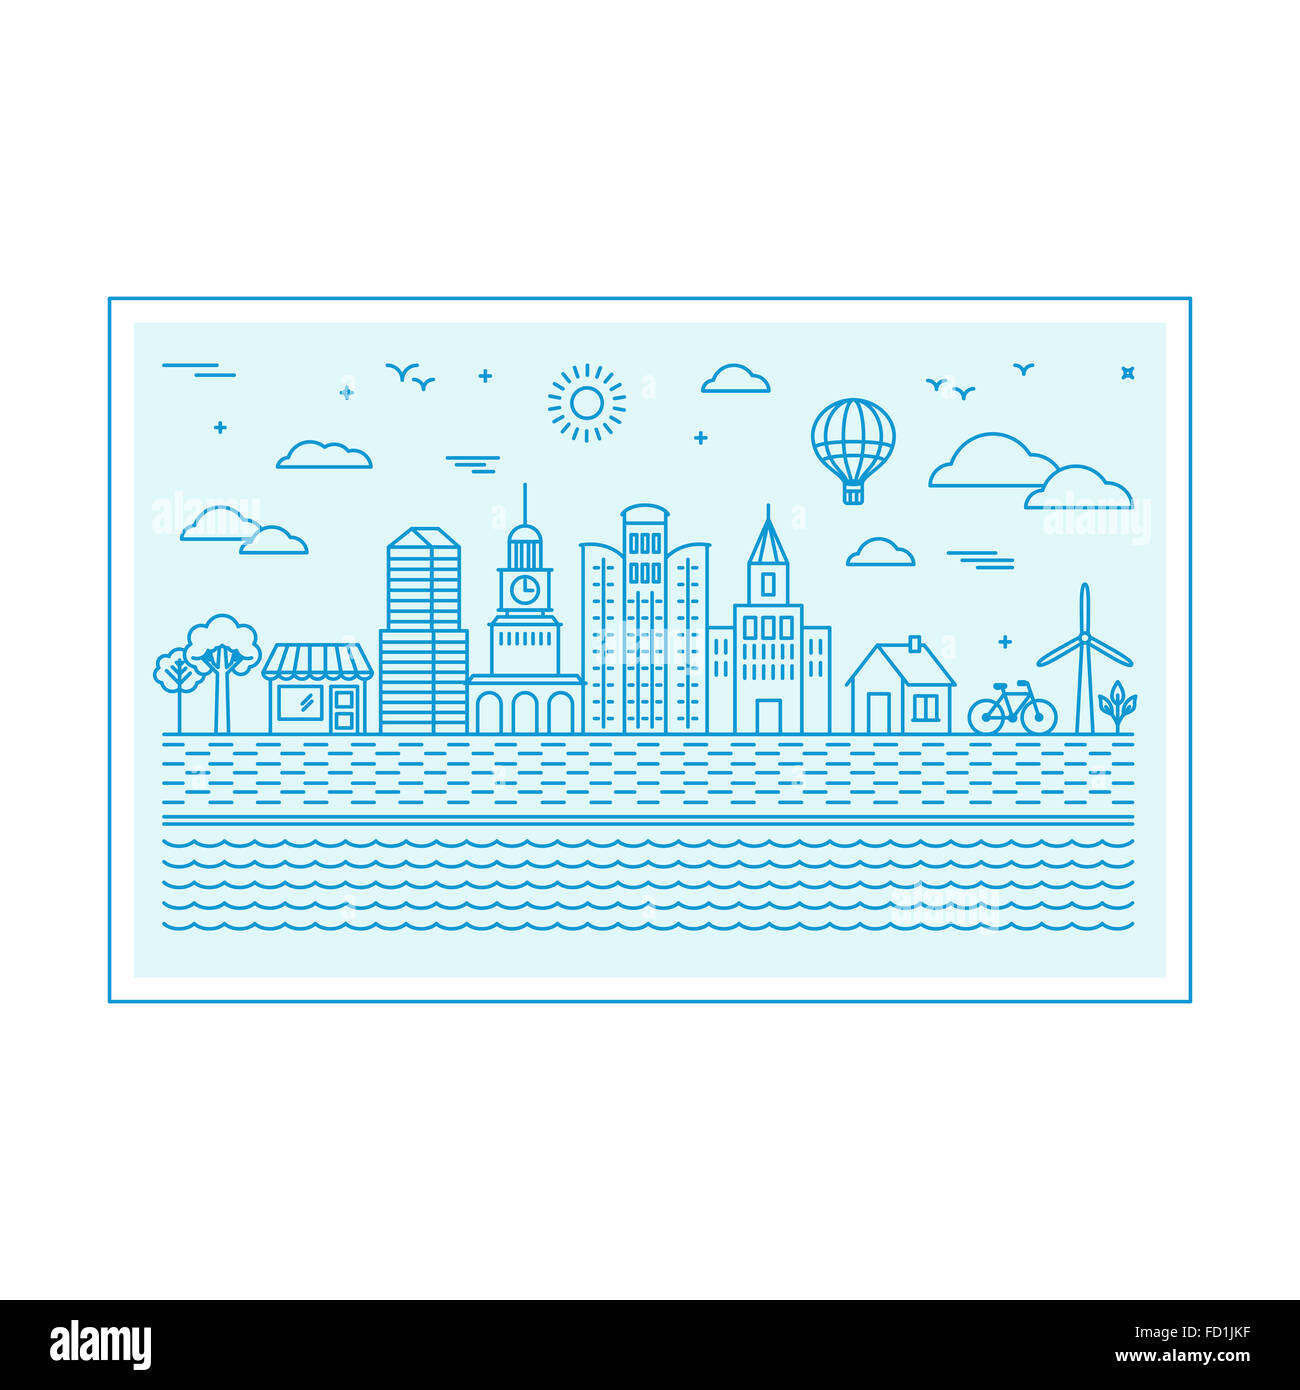 Illustration with city skyline in trendy linear style - abstract modern town  concept with icons in blue colors - Stock Image